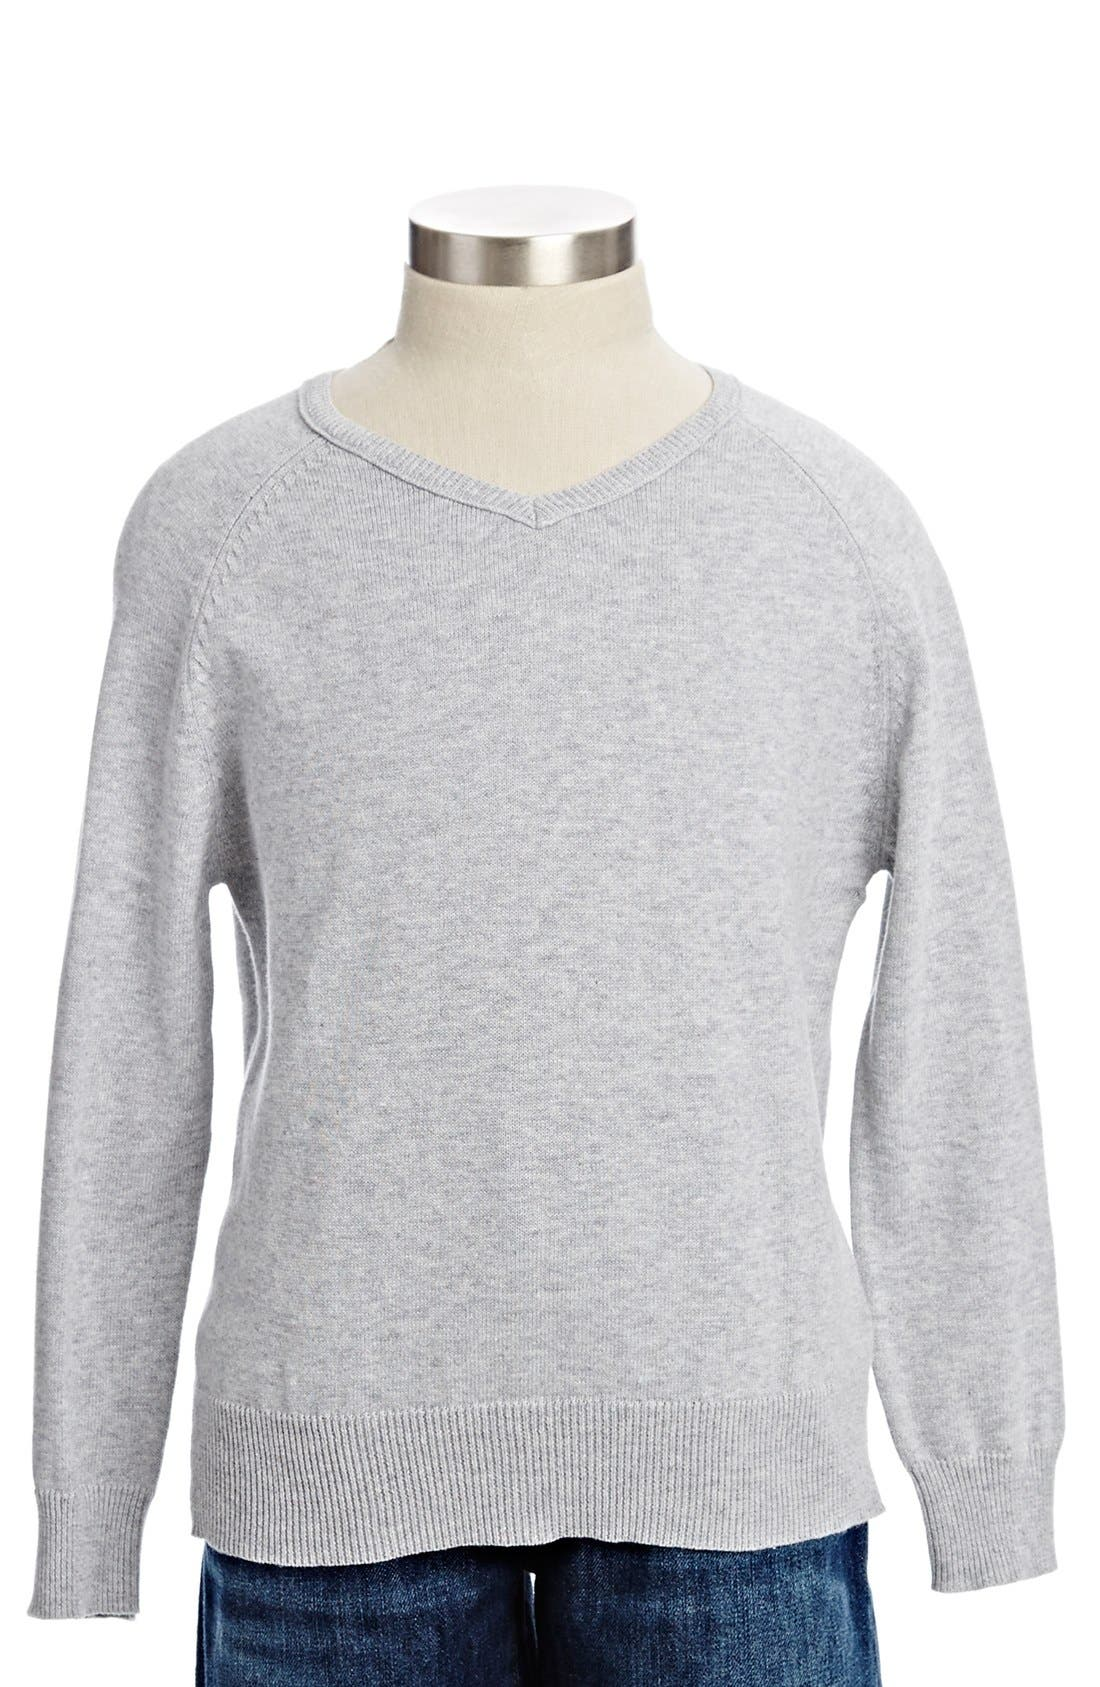 Main Image - Peek 'Grant' V-Neck Sweater (Toddler Boys, Little Boys & Big Boys)